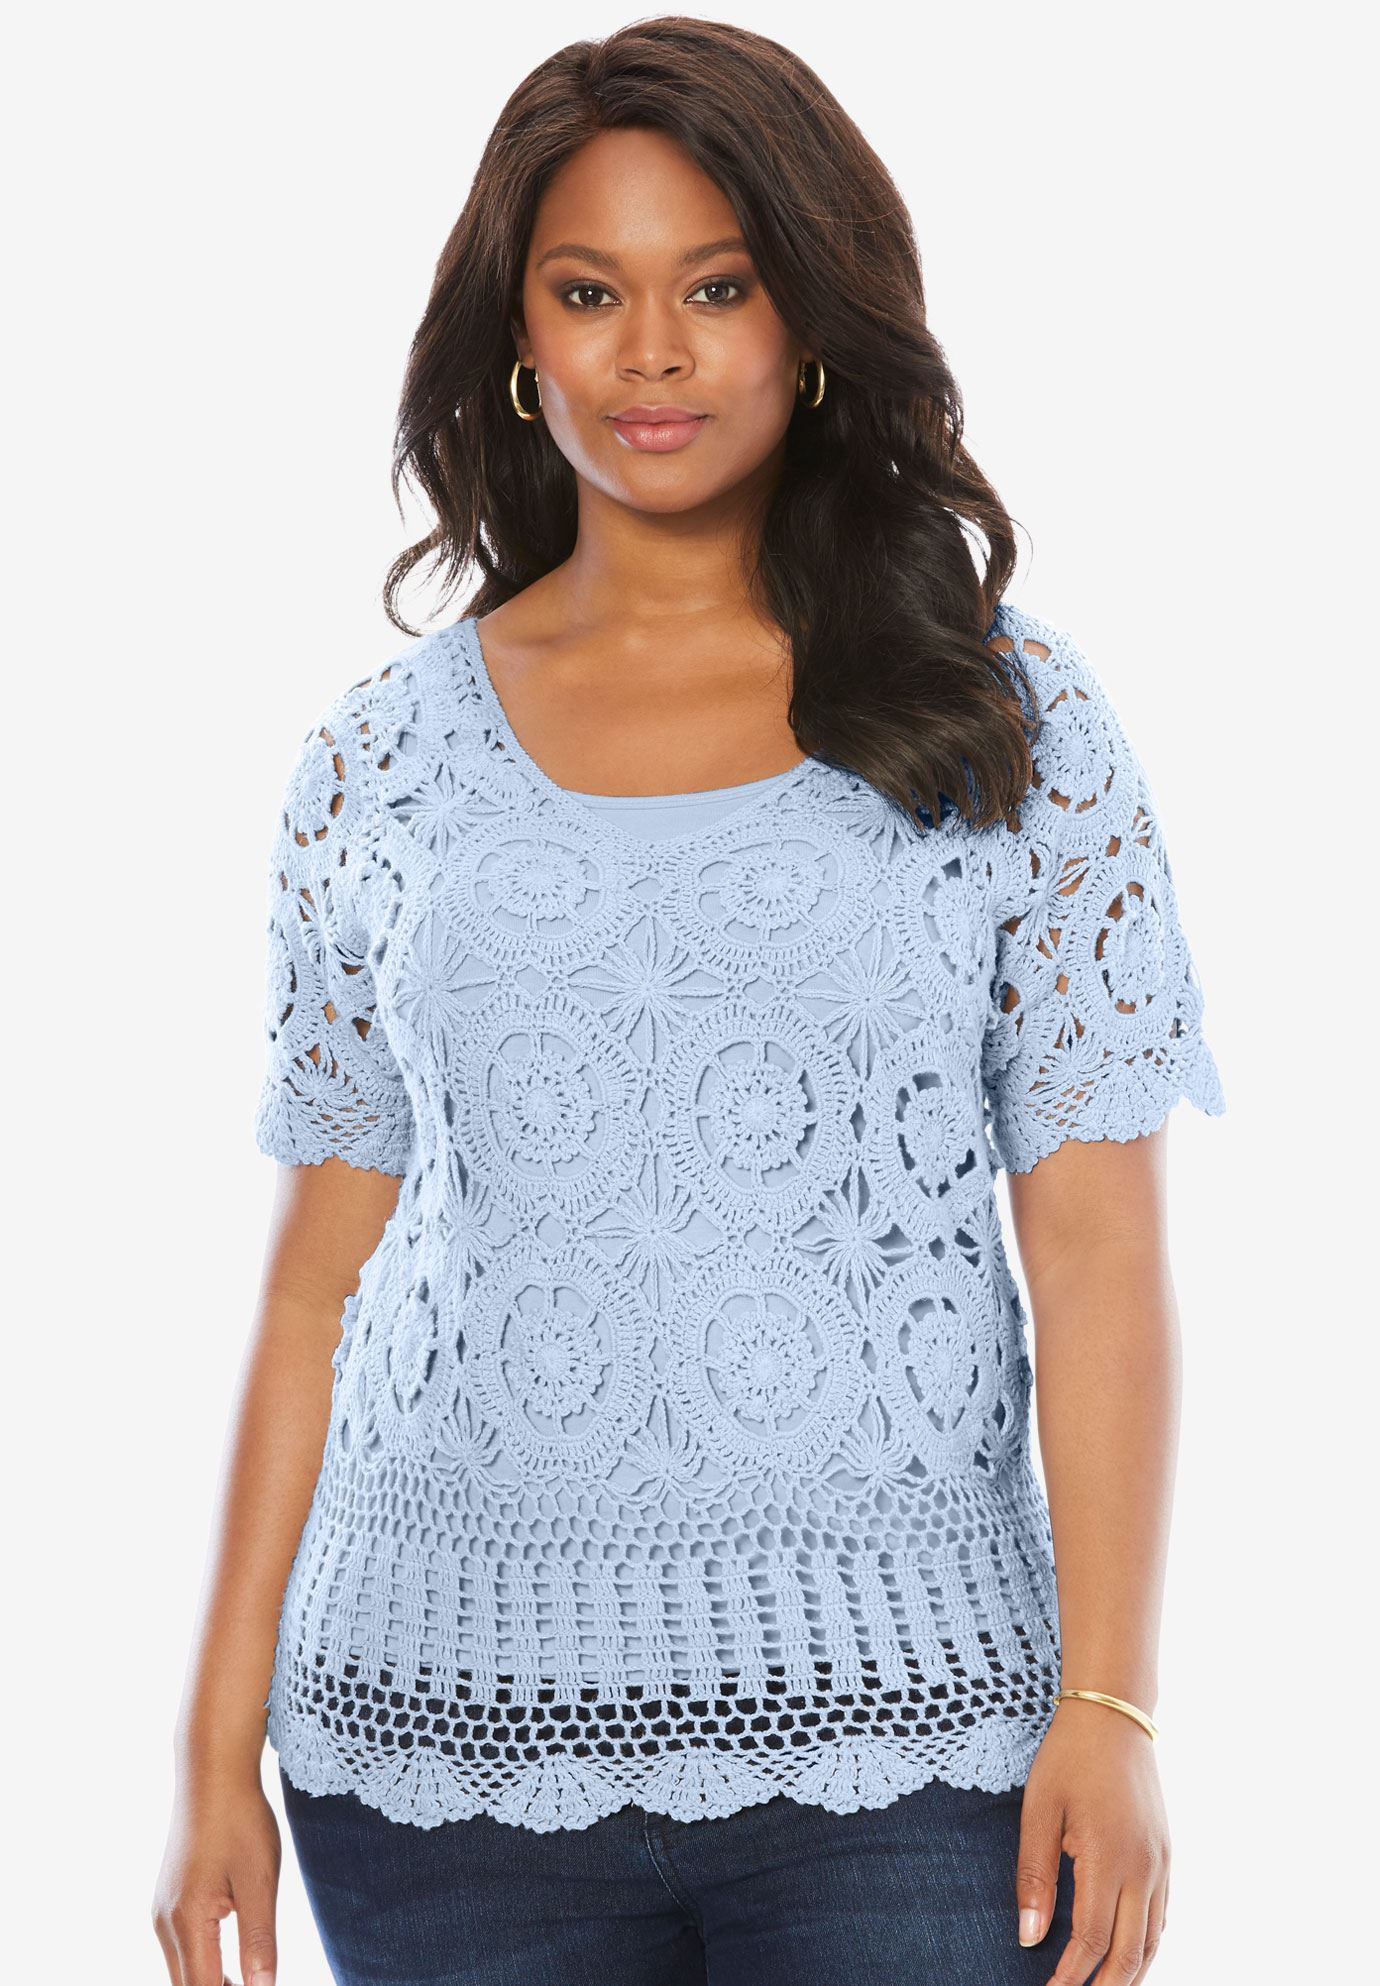 Awesome French Crochet Sweater by Denim 24 7 Crochet Sweater Dresses Of Great 44 Photos Crochet Sweater Dresses